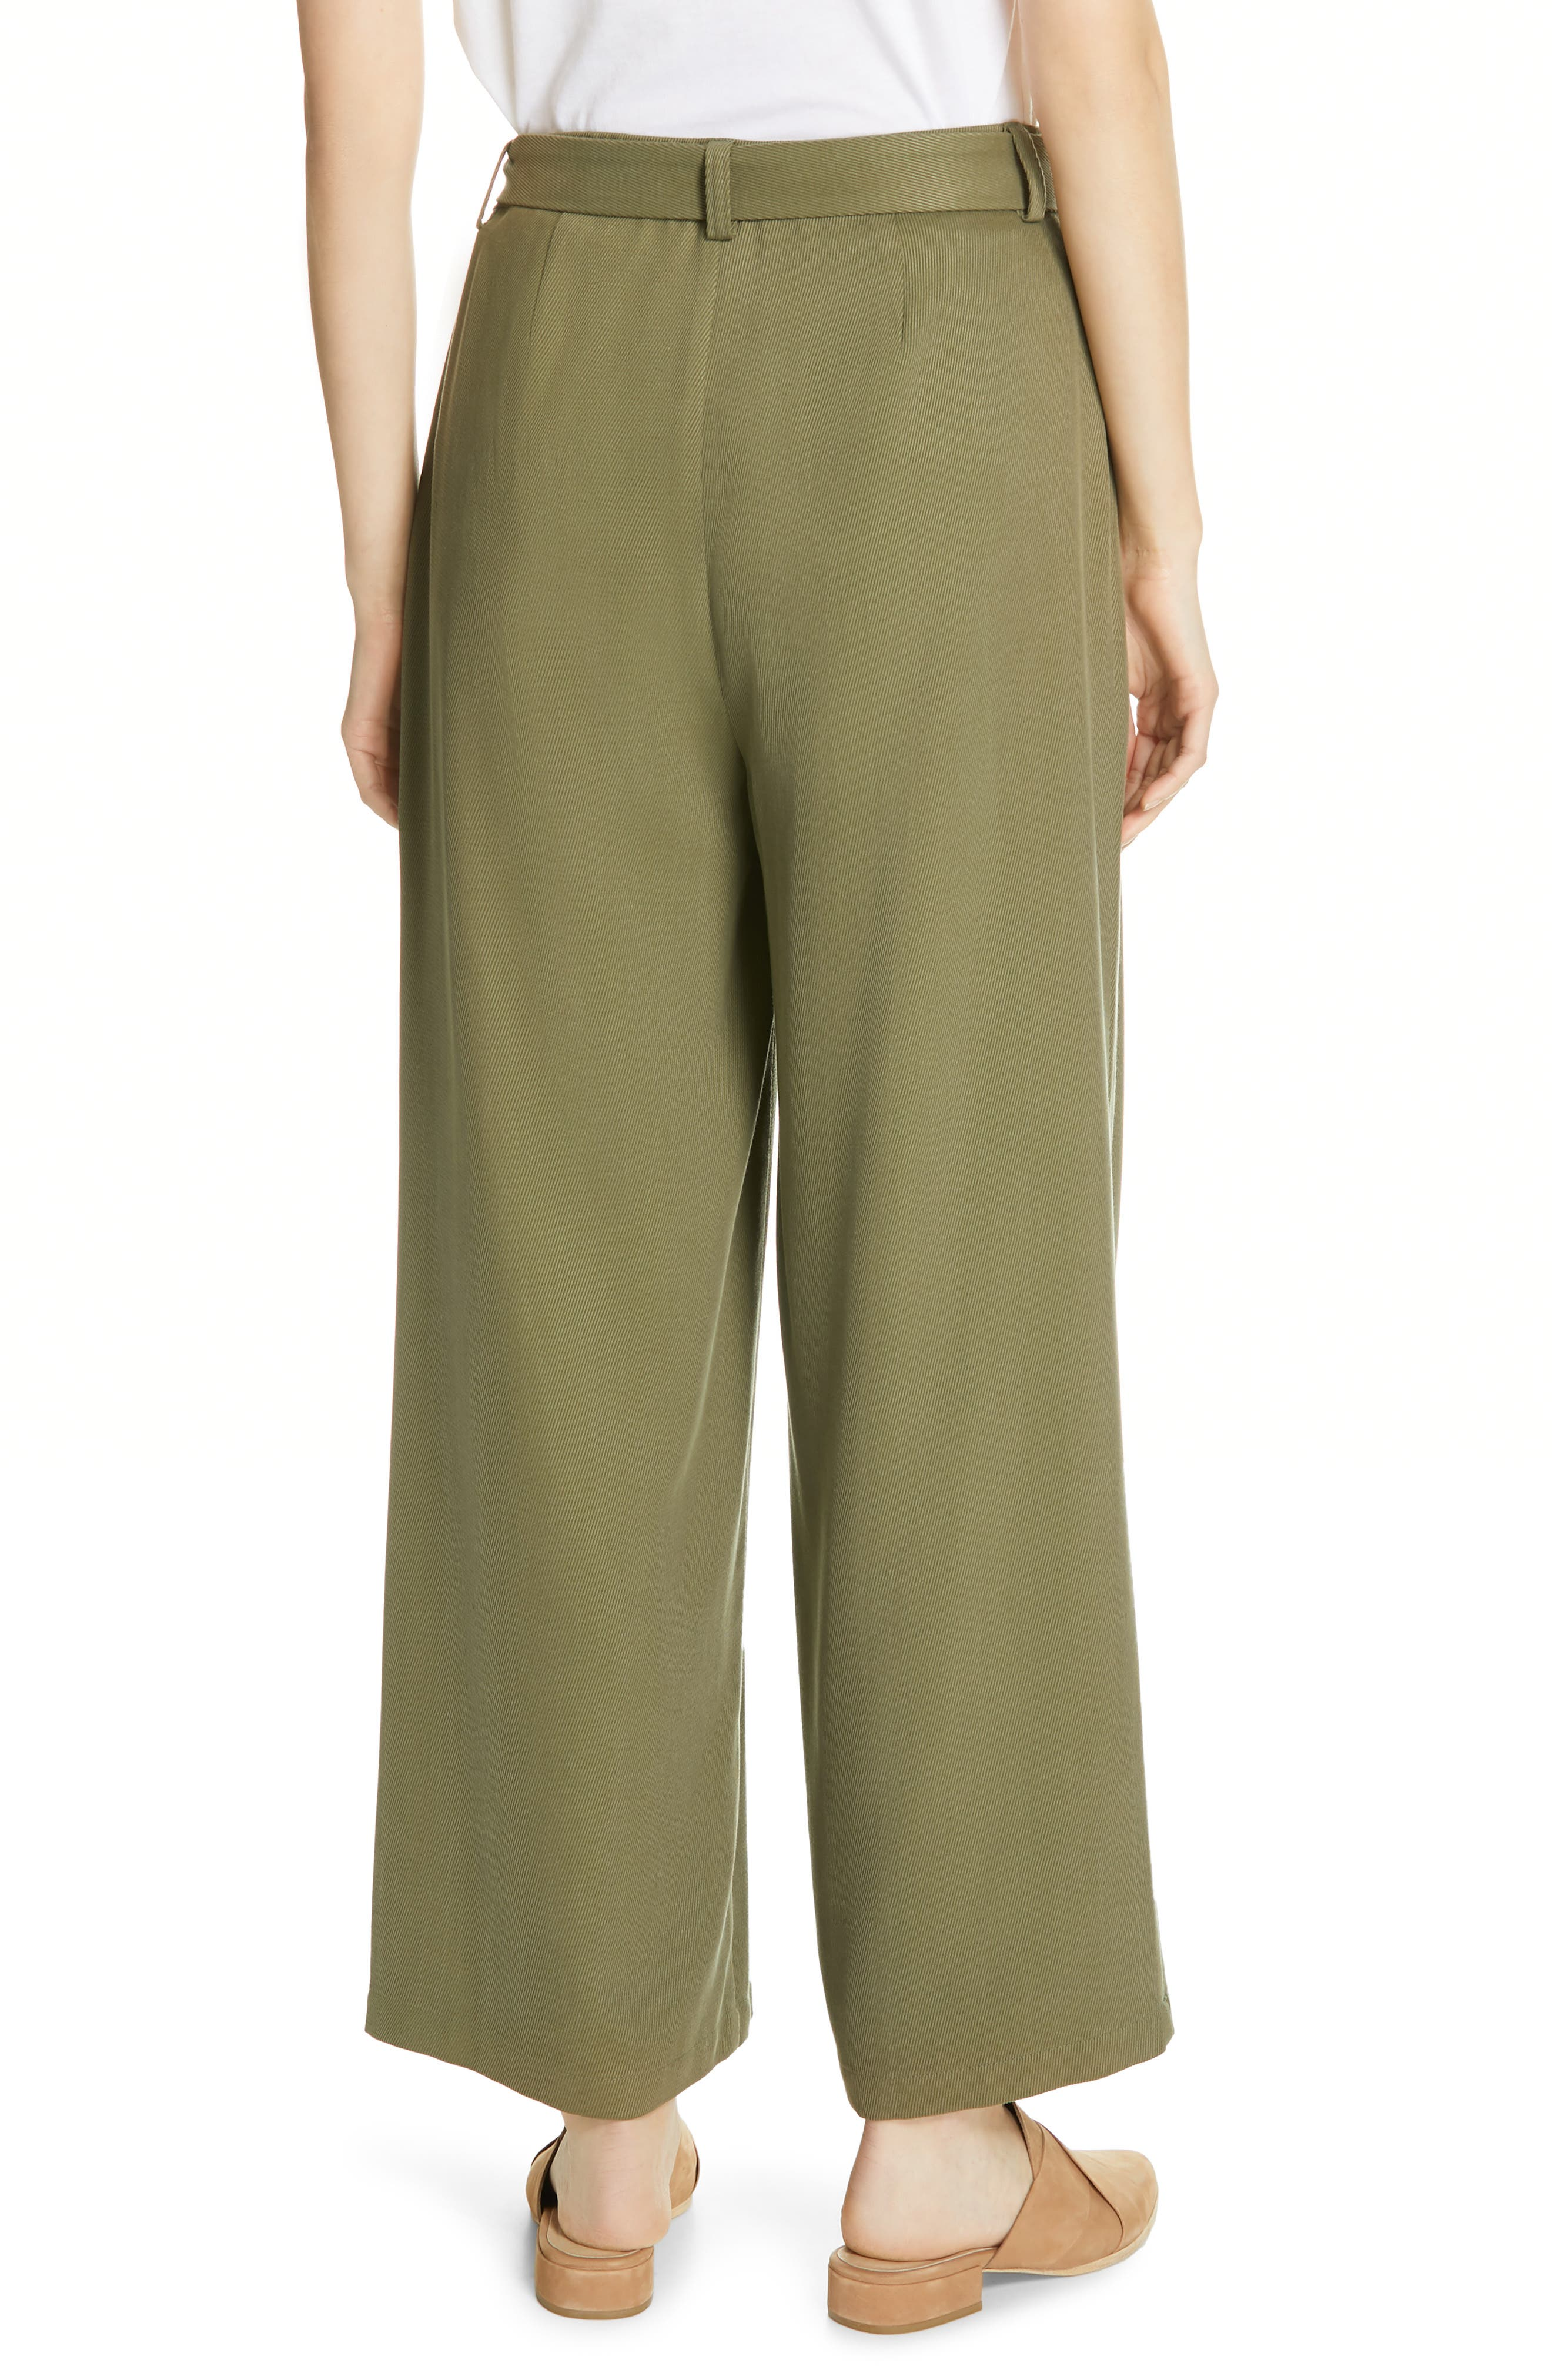 EILEEN FISHER, Belted Wide Leg Pants, Alternate thumbnail 2, color, 301